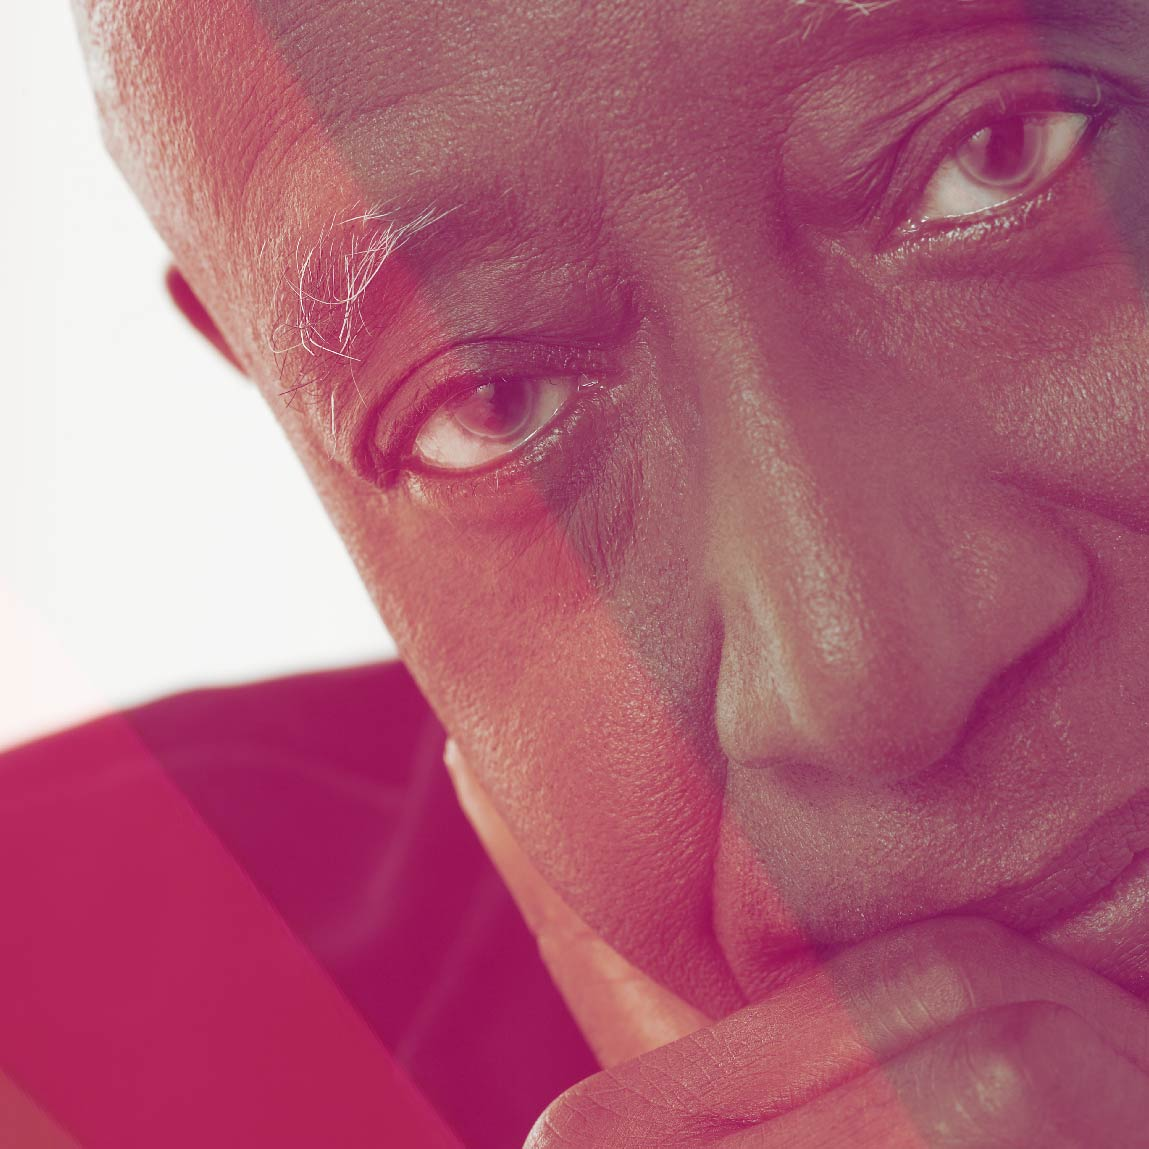 FG Portraits - Mature African American Man Close Up.jpg